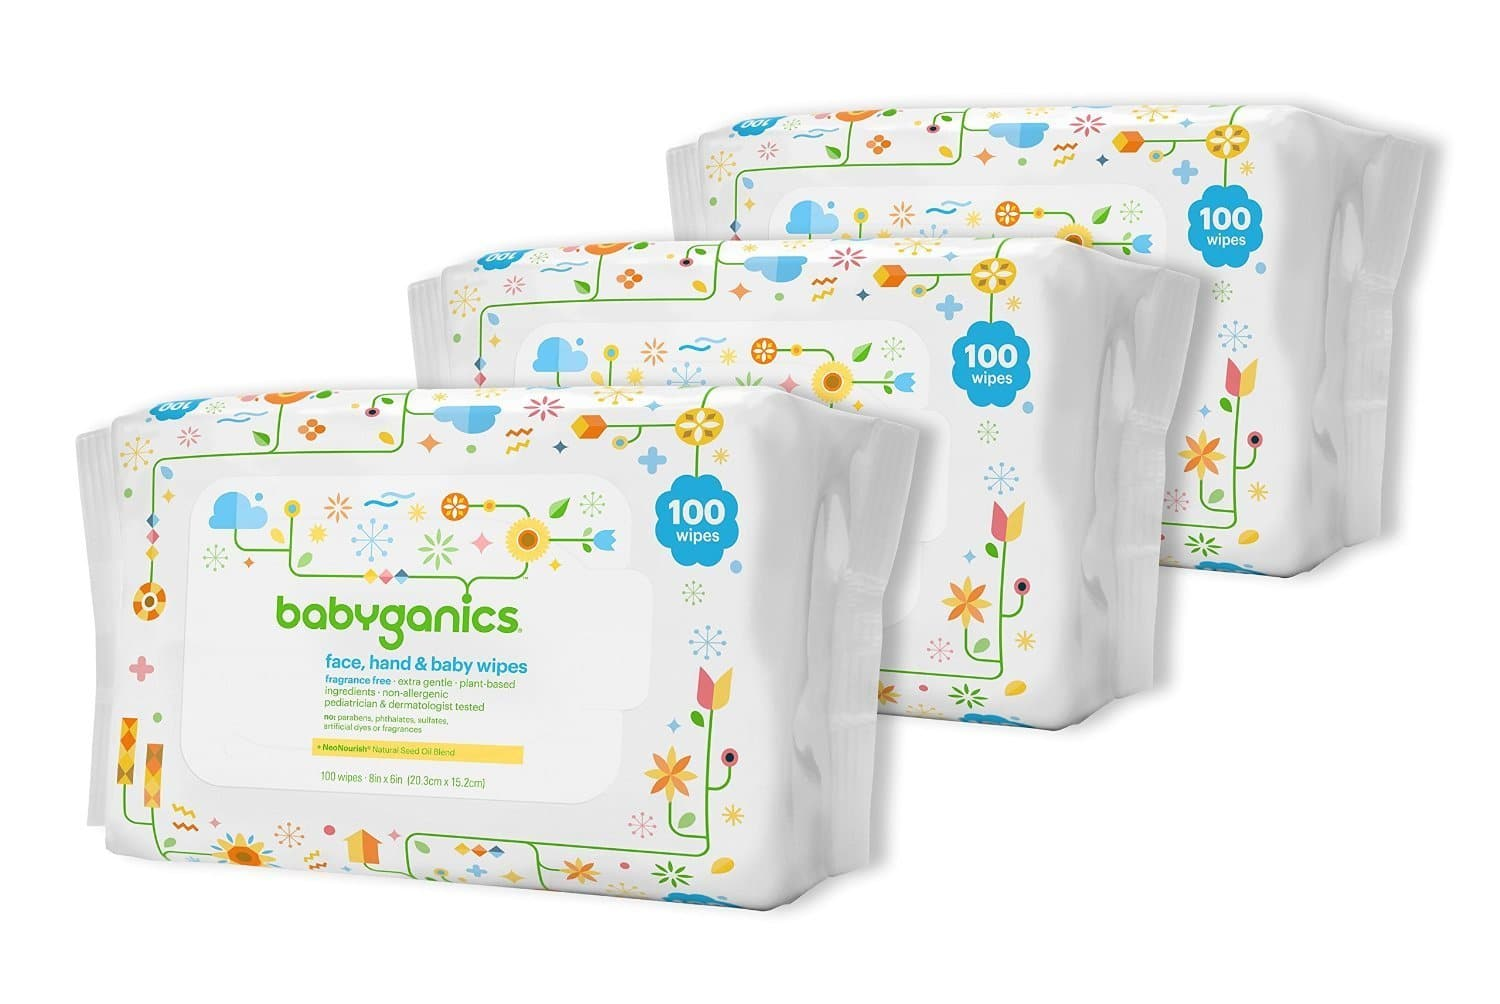 Amazon Babyganics Face, Hand & Baby Wipes - Fragrance Free, 300 Count (Three 100-Count Packs) for $7.64